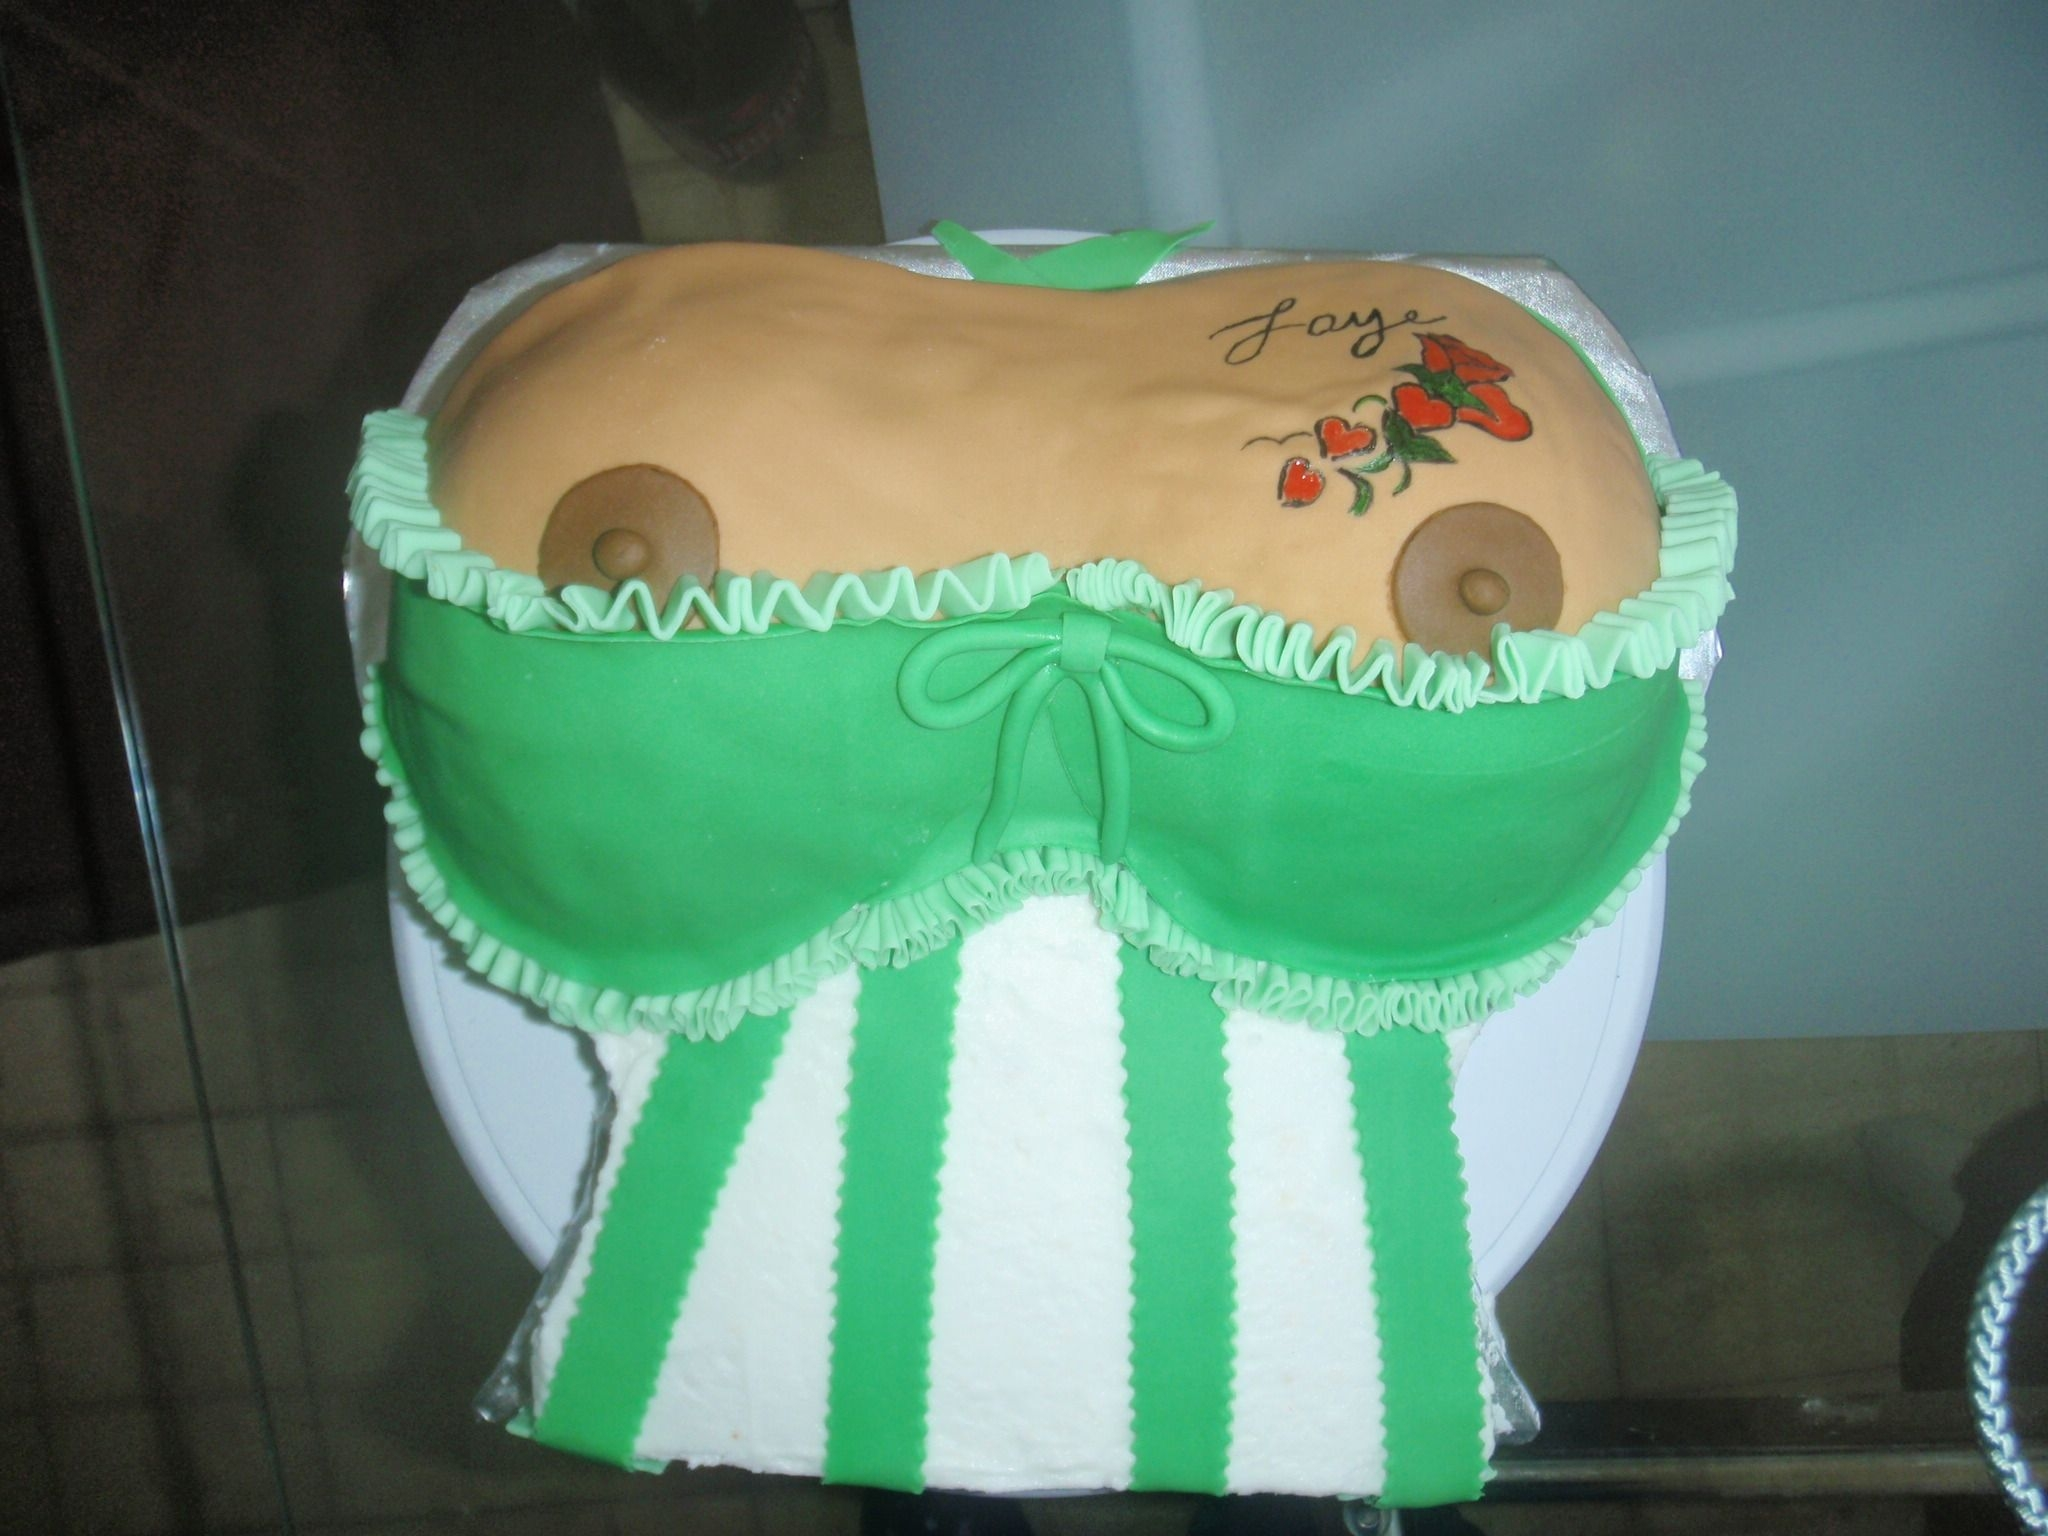 Tattooed Boobies I did this cake for a woman who wanted to give her husband a personal cake for his birthday. The tattoo was hand-painted from her tattoo...